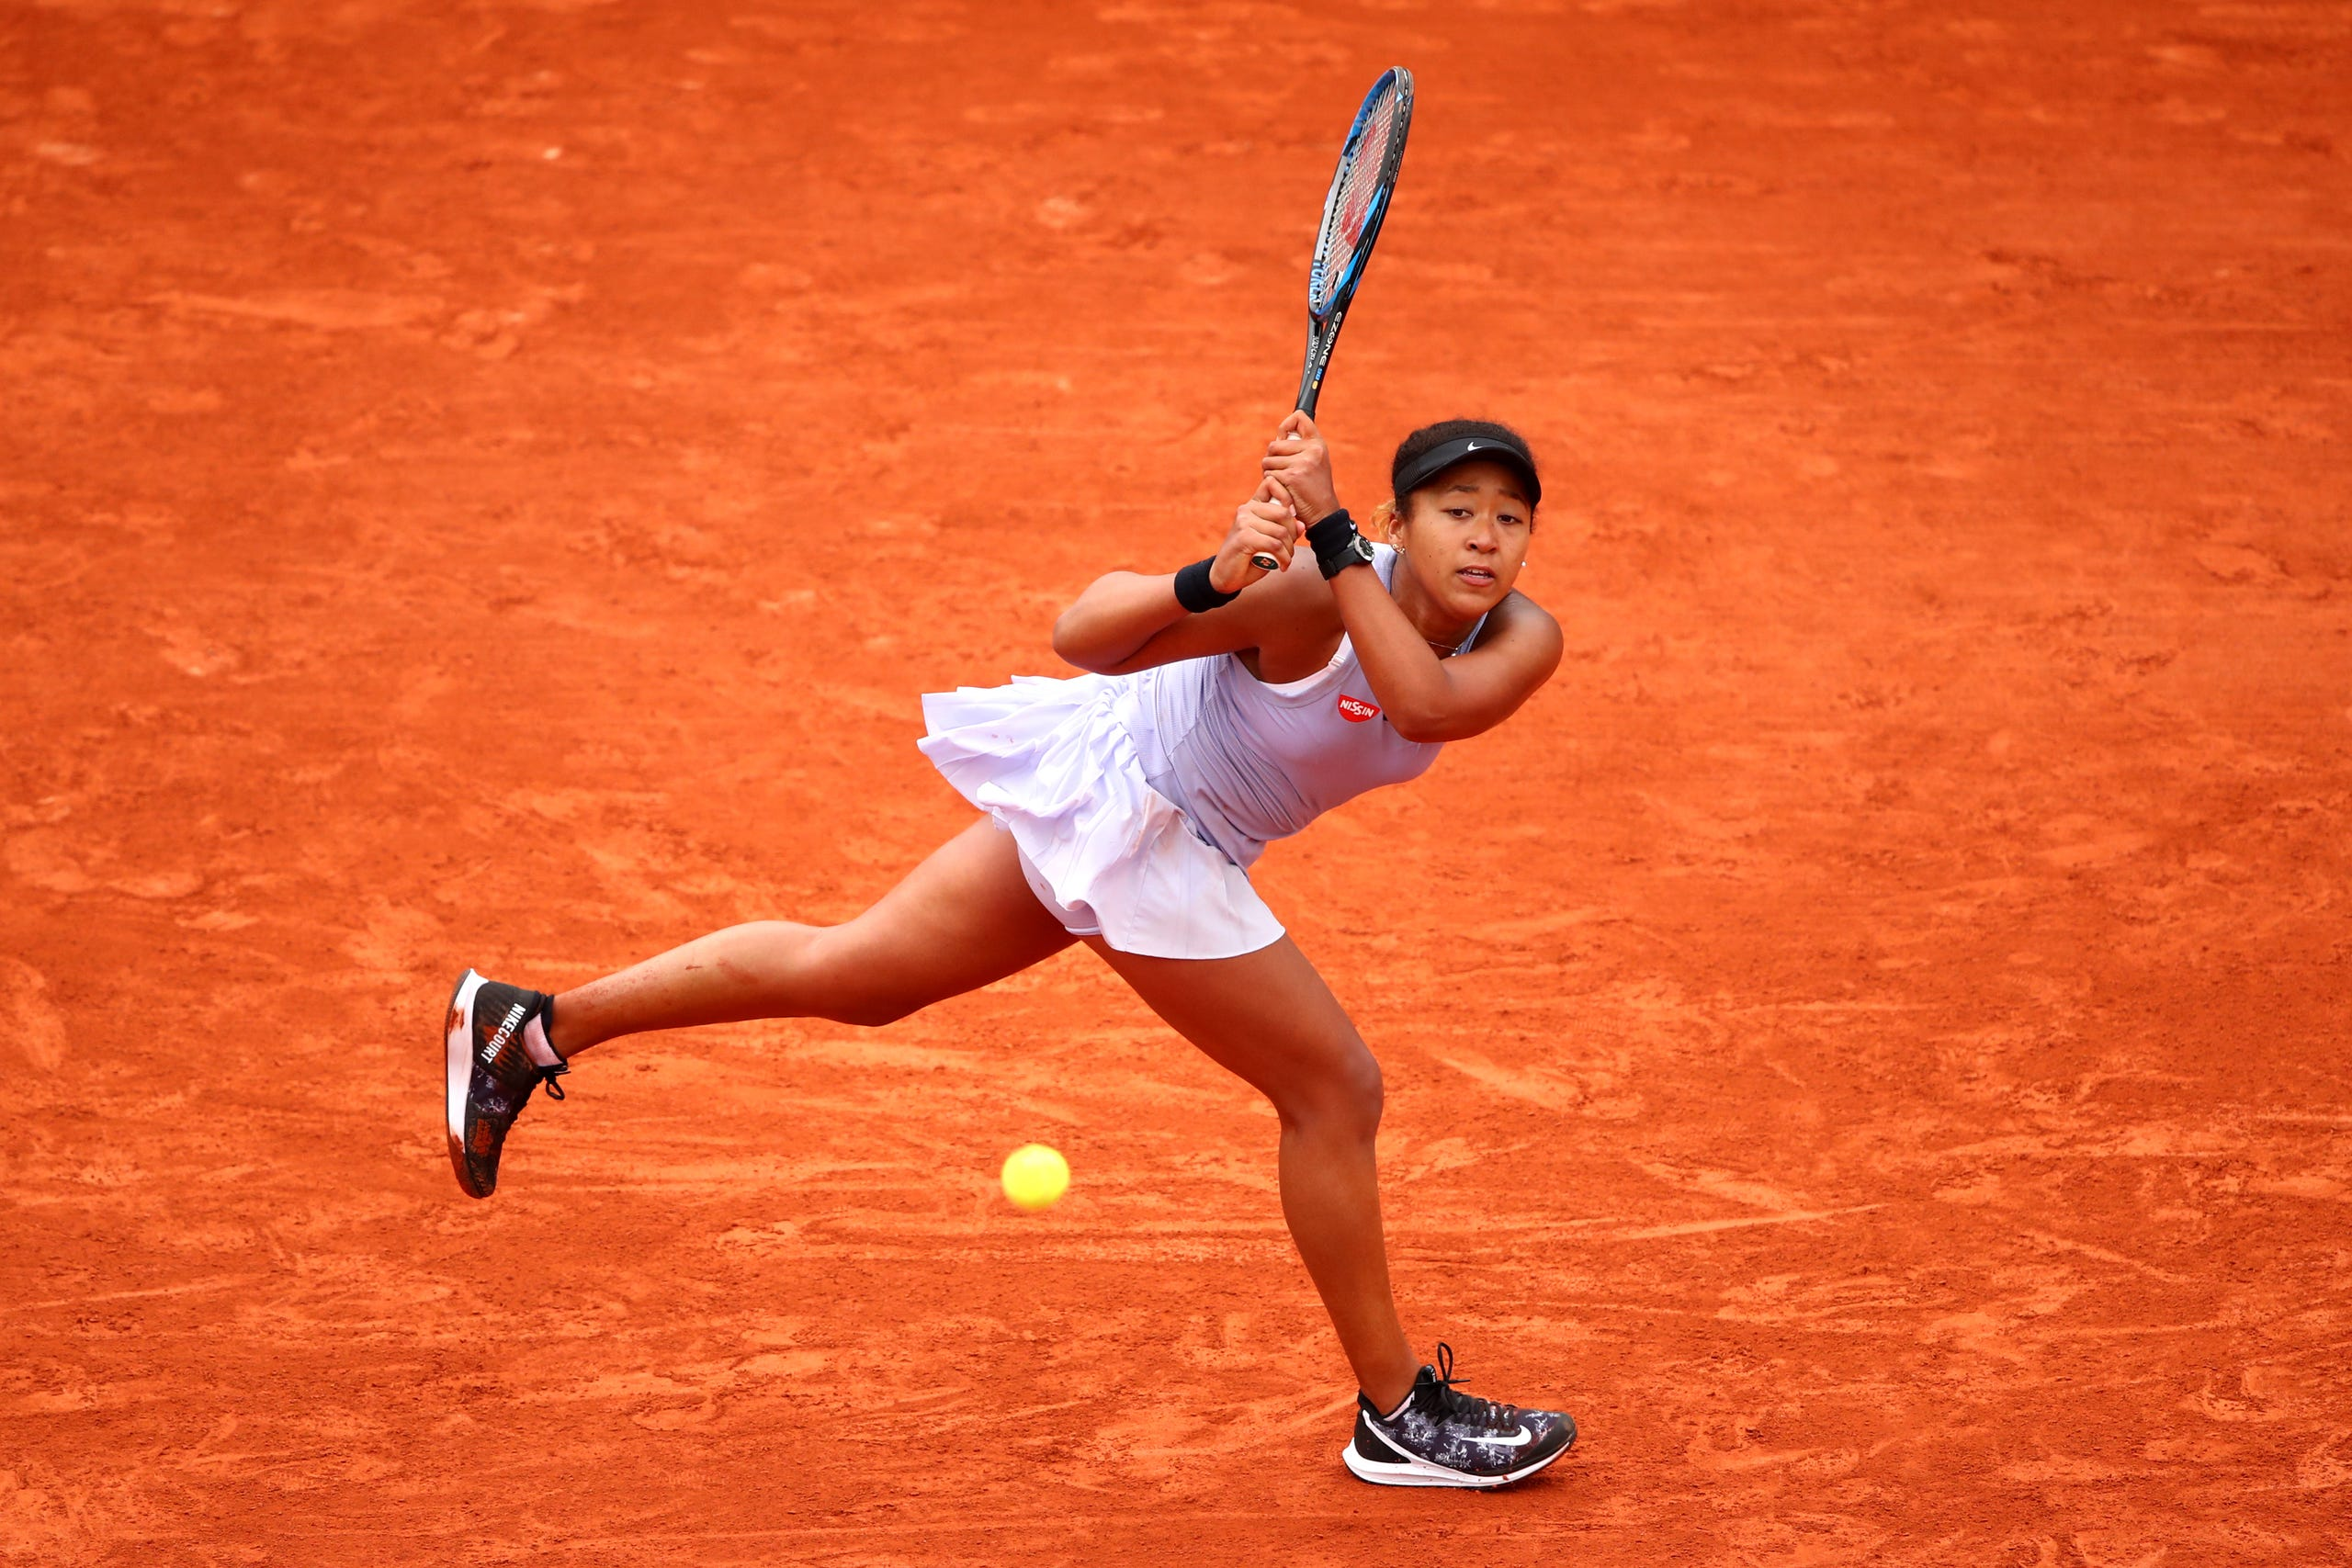 Naomi Osaka of Japan plays a backhand during her ladies singles second round match against Victoria Azarenka of Belarus during Day five of the 2019 French Open at Roland Garros on May 30, 2019 in Paris, France.